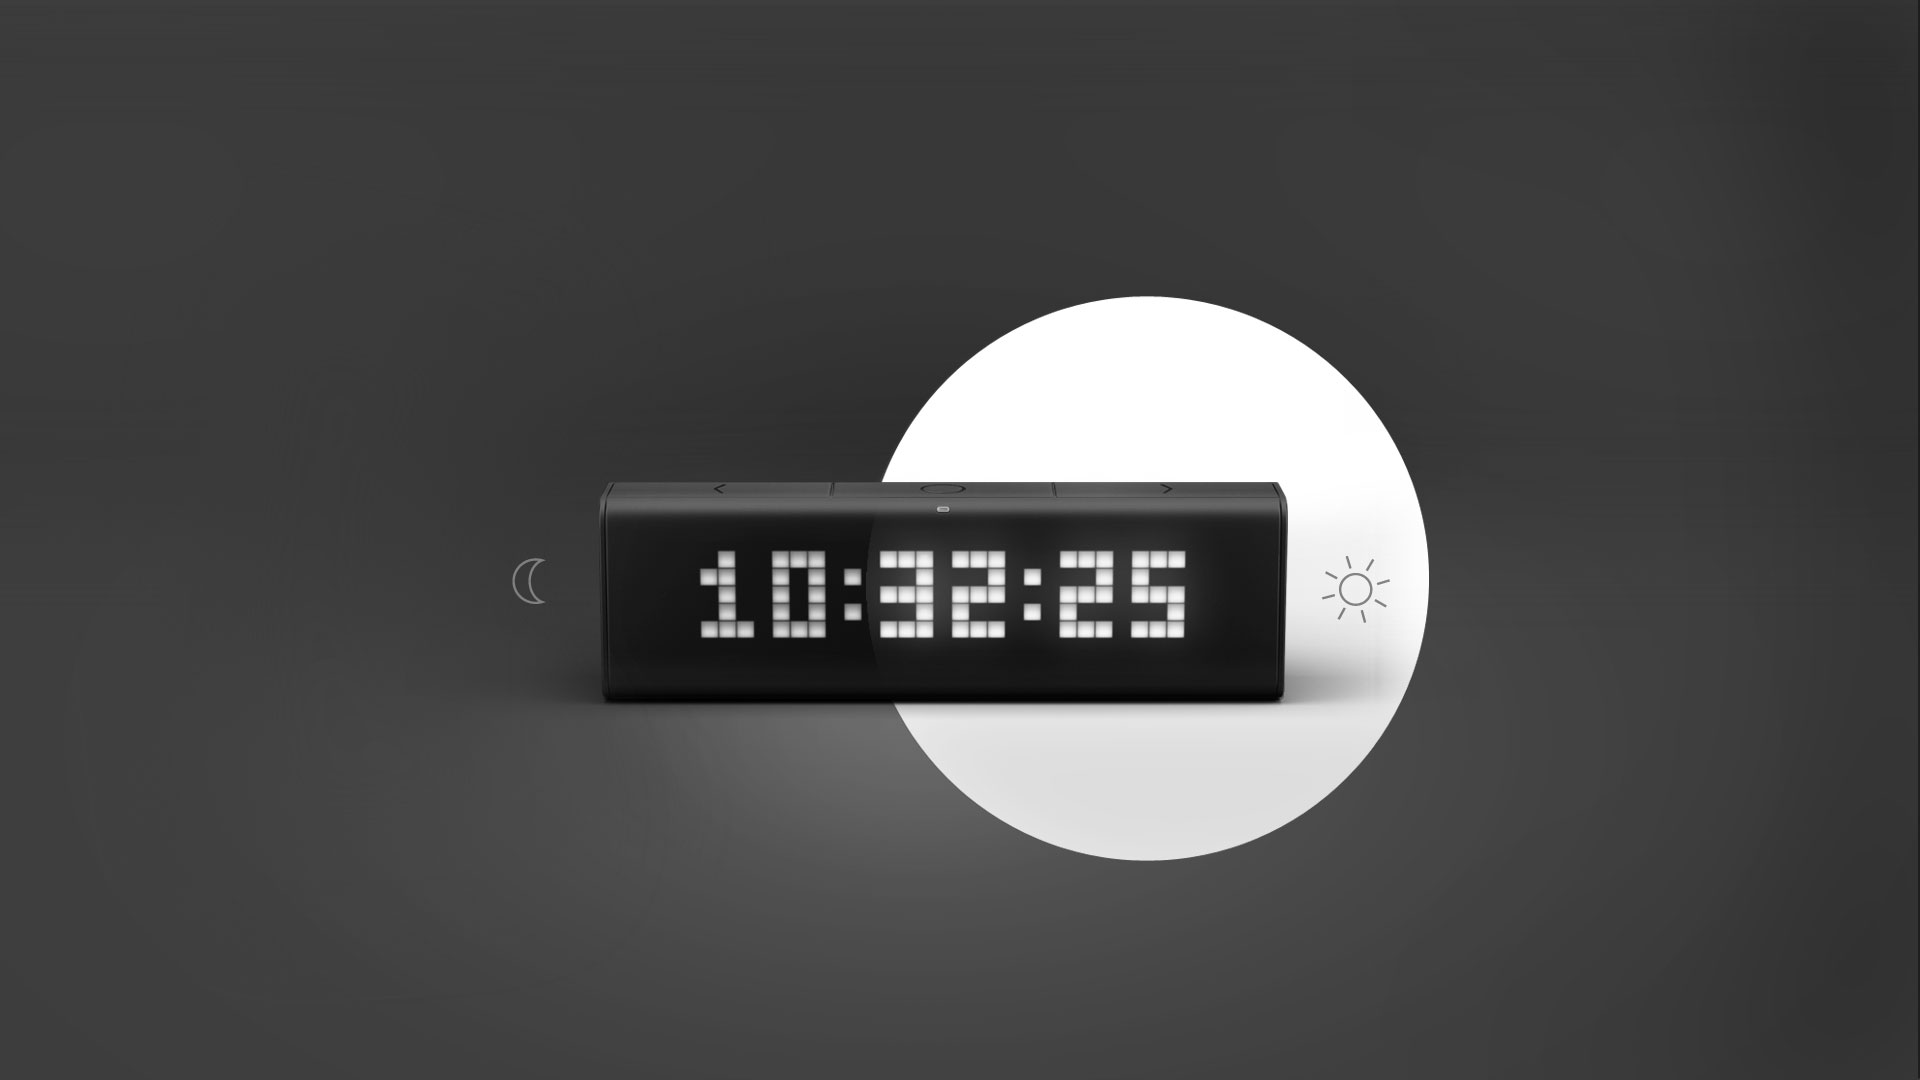 Comfortable brightness to your eyes on LaMetric Time display